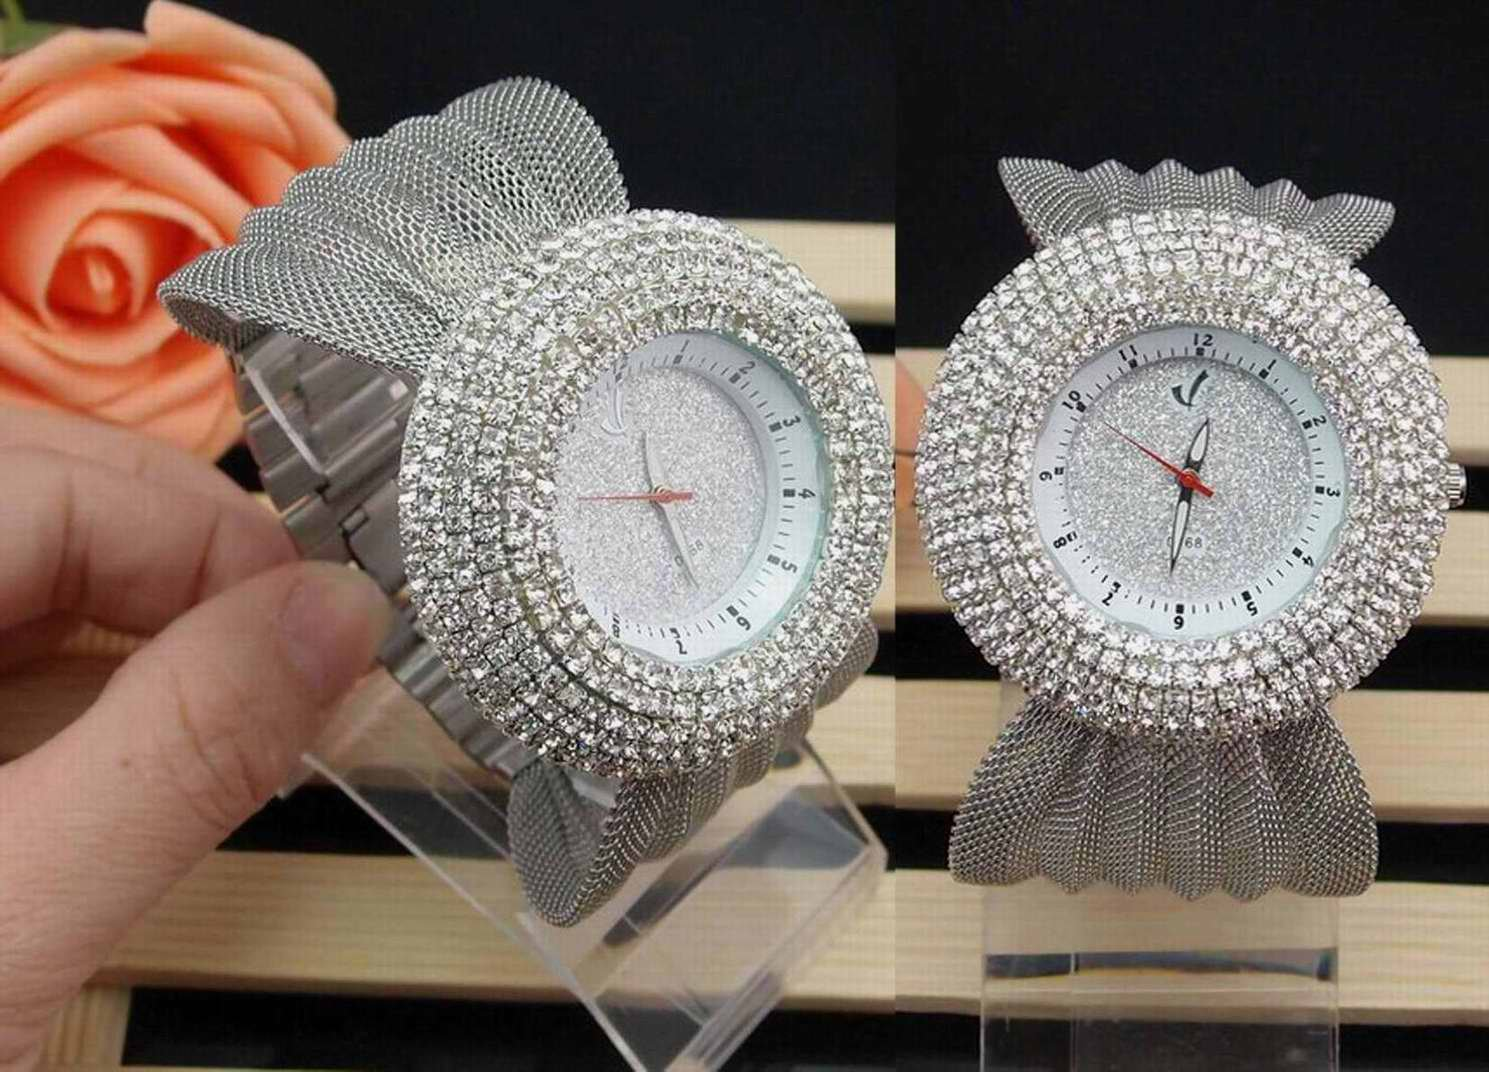 Pretty watch